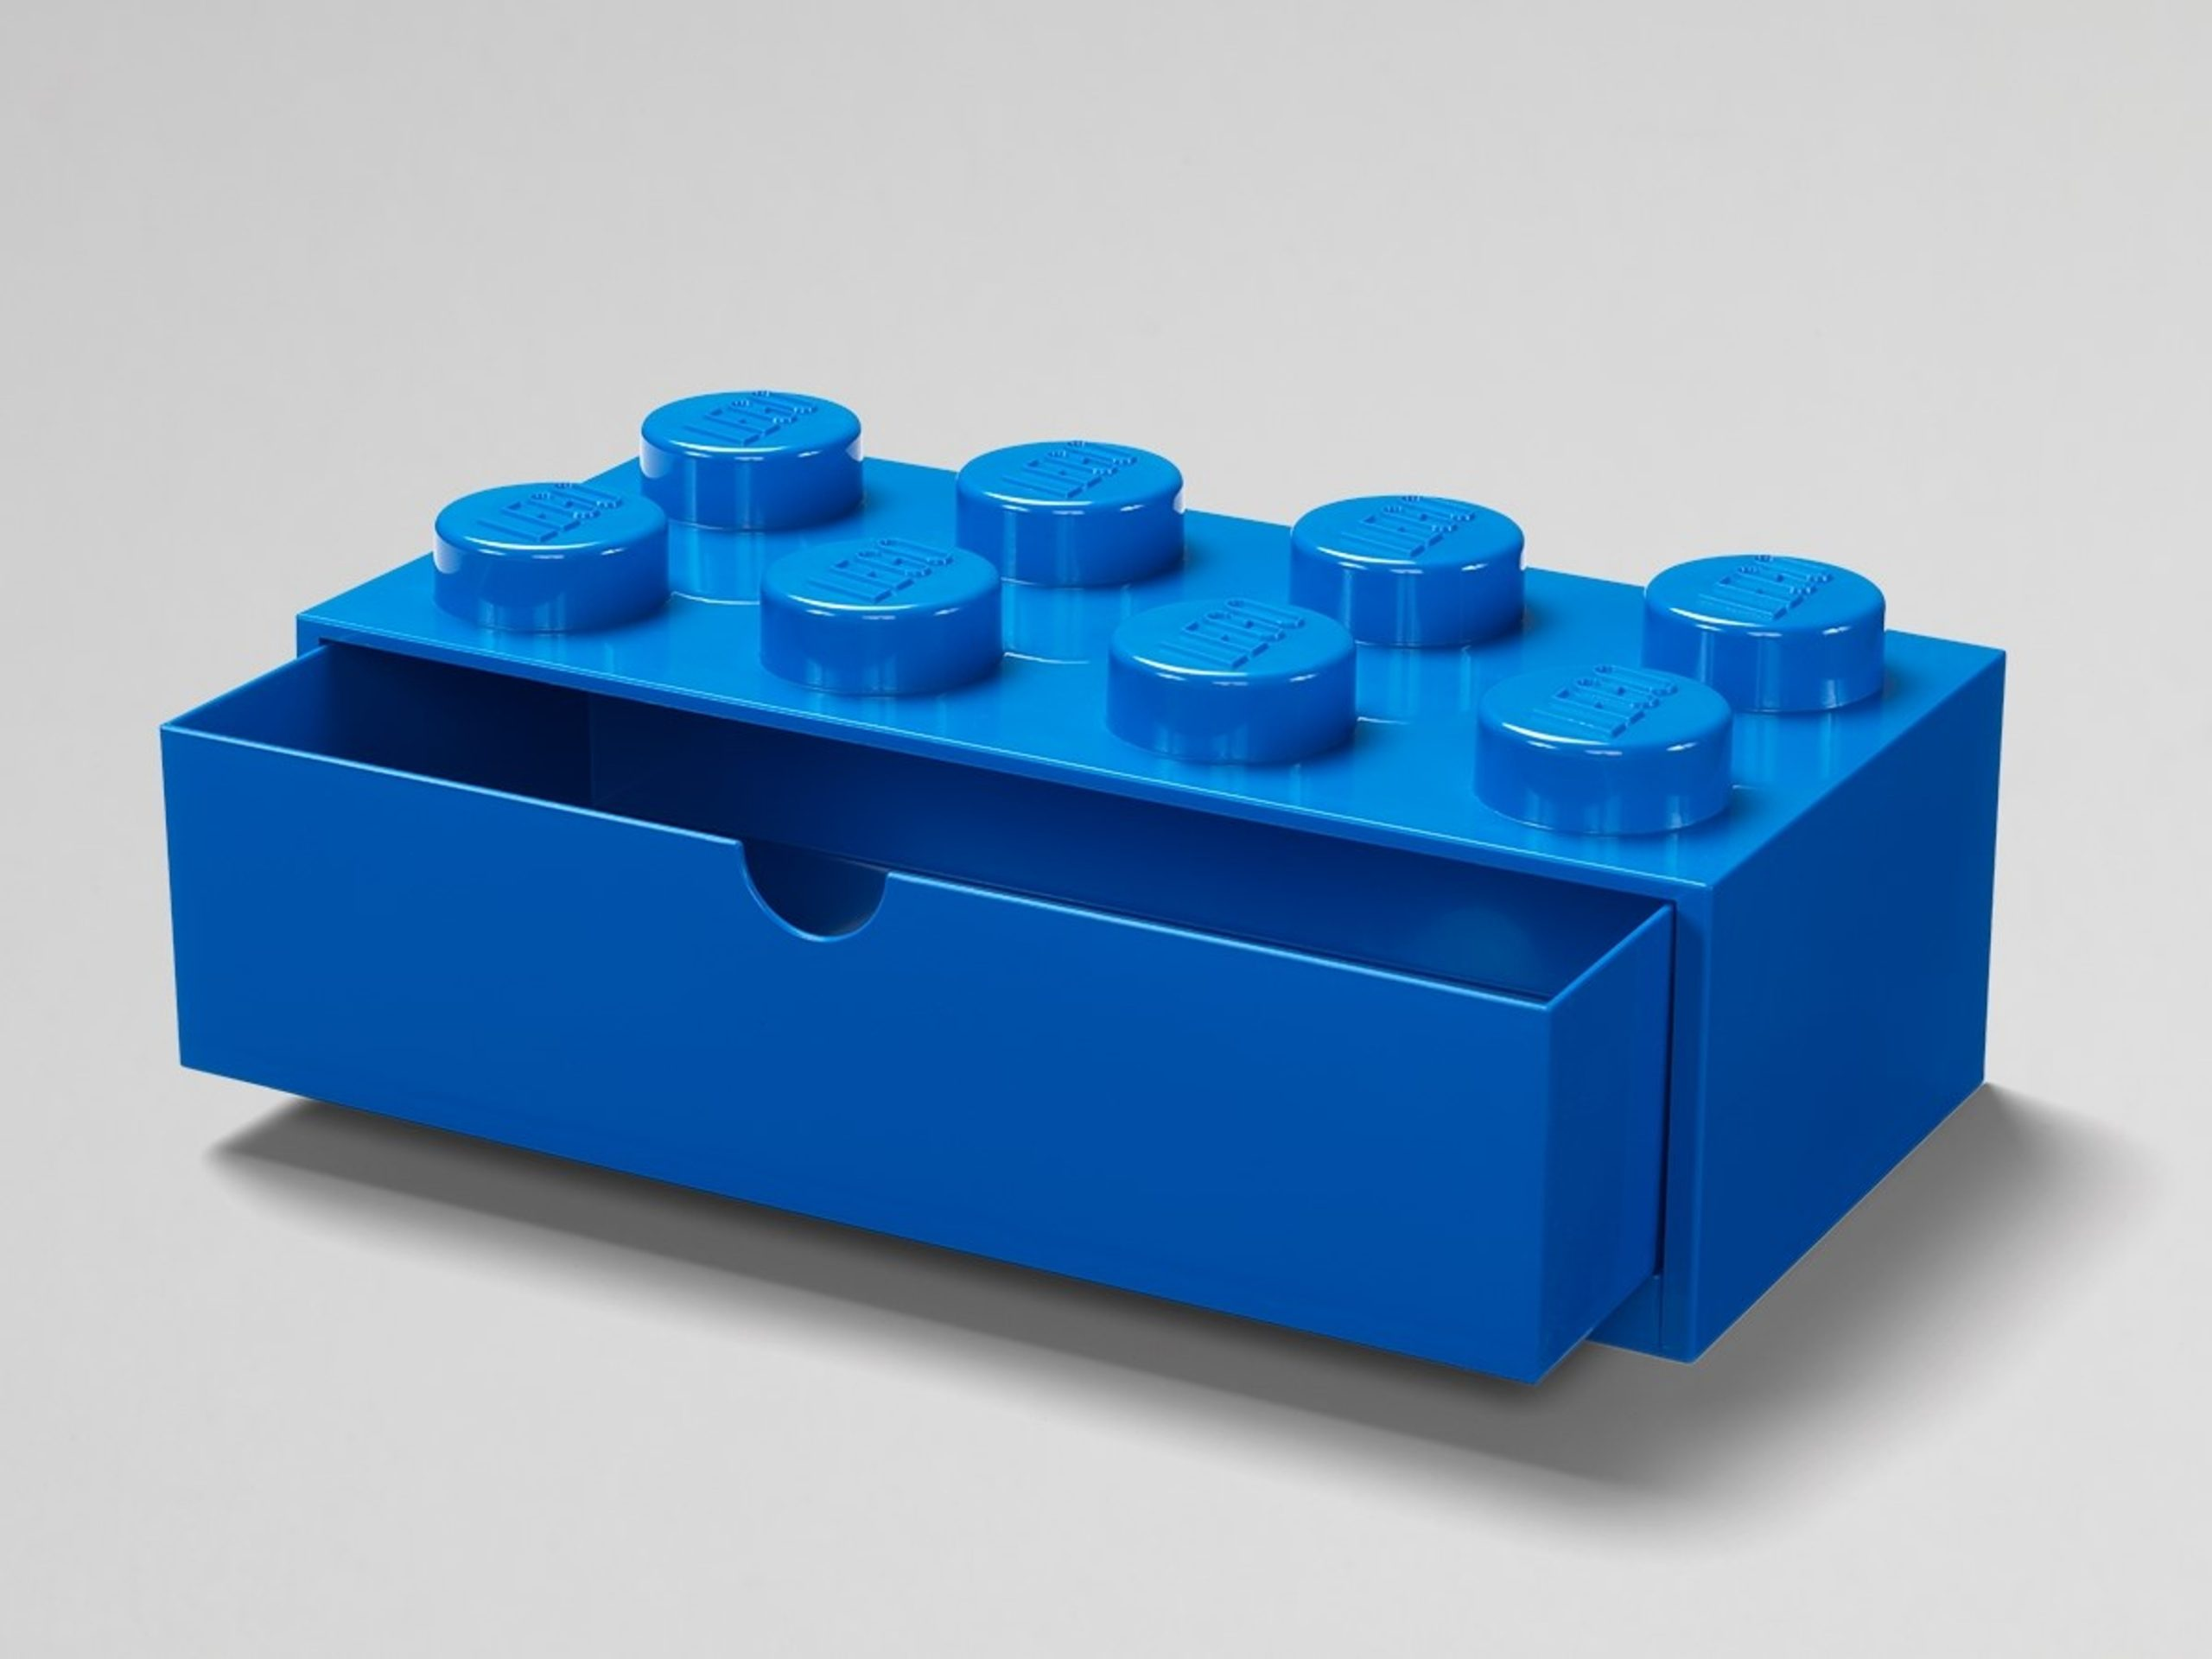 lego 5005891 8 stud blue desk drawer scaled